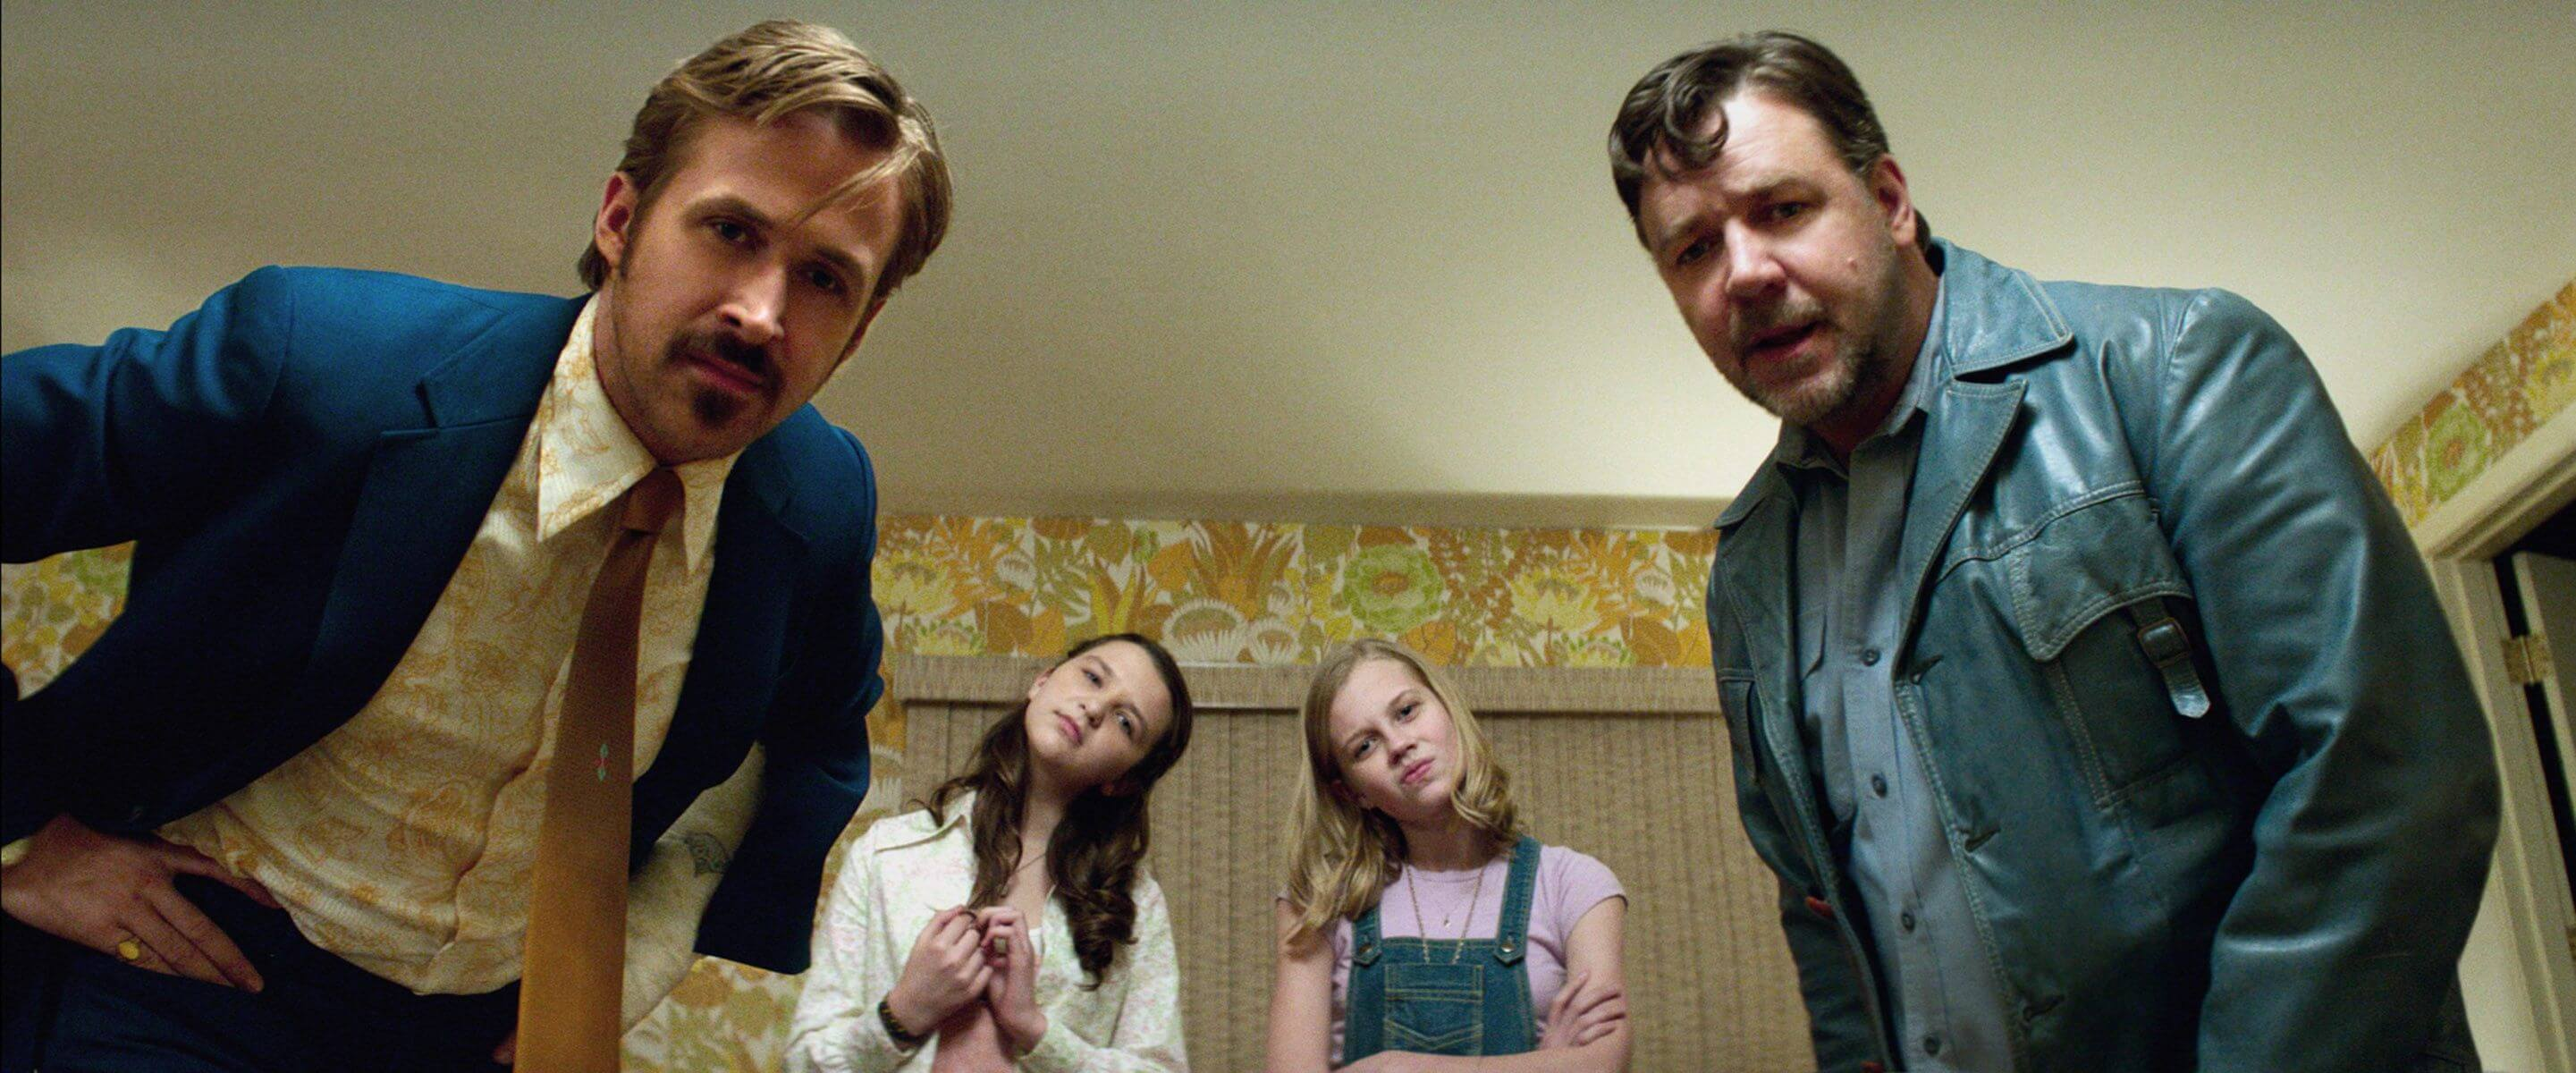 Best Films of 2016 The Nice Guys